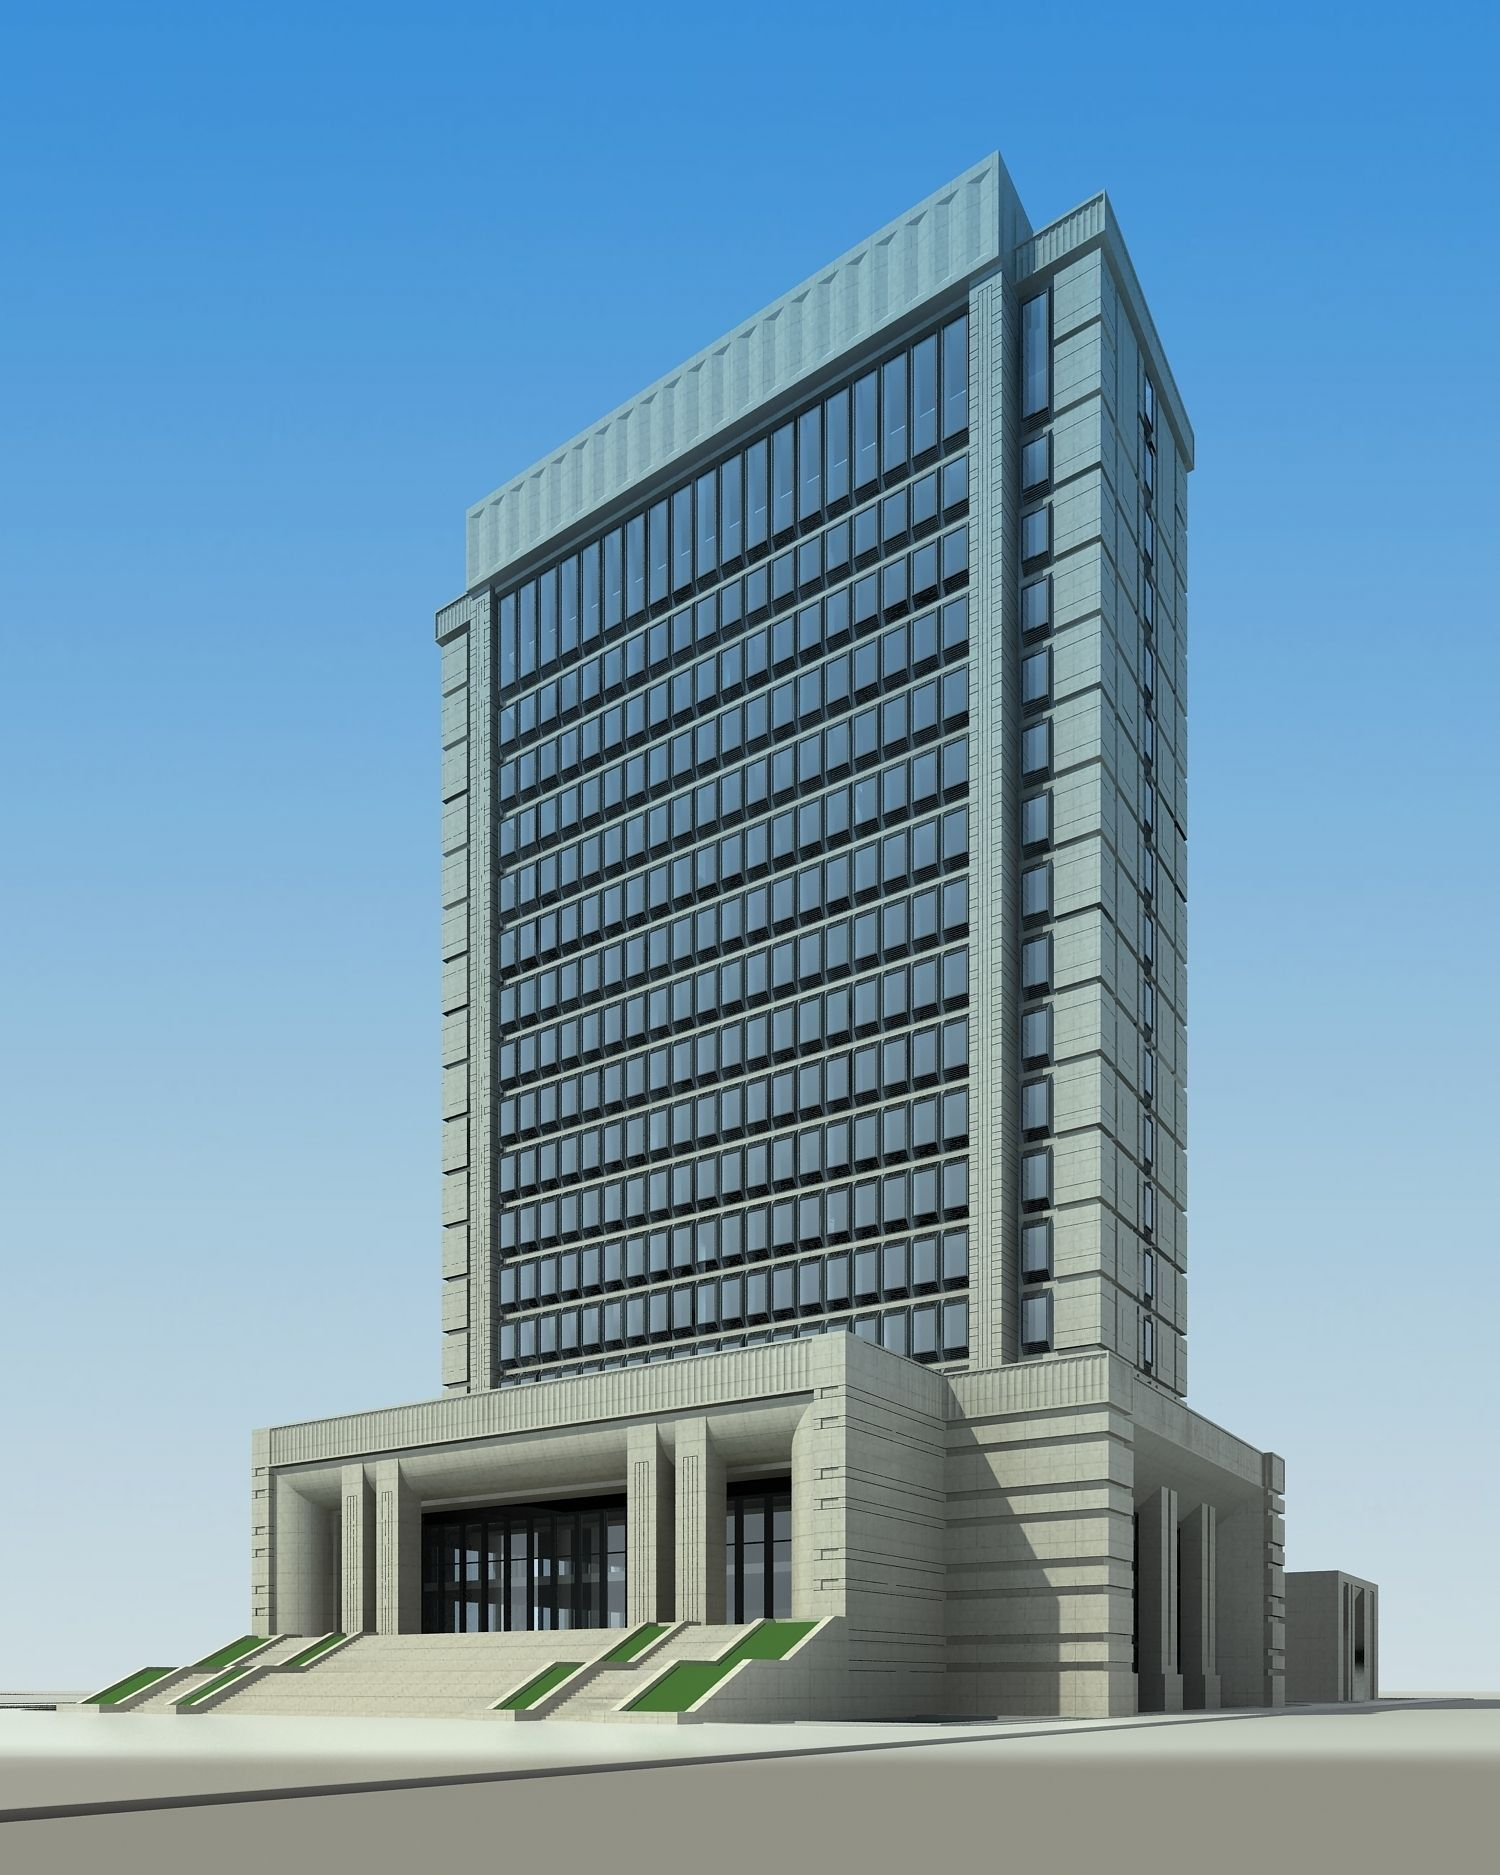 High rise office building with staircase d 3d model max for Modern high rise building design